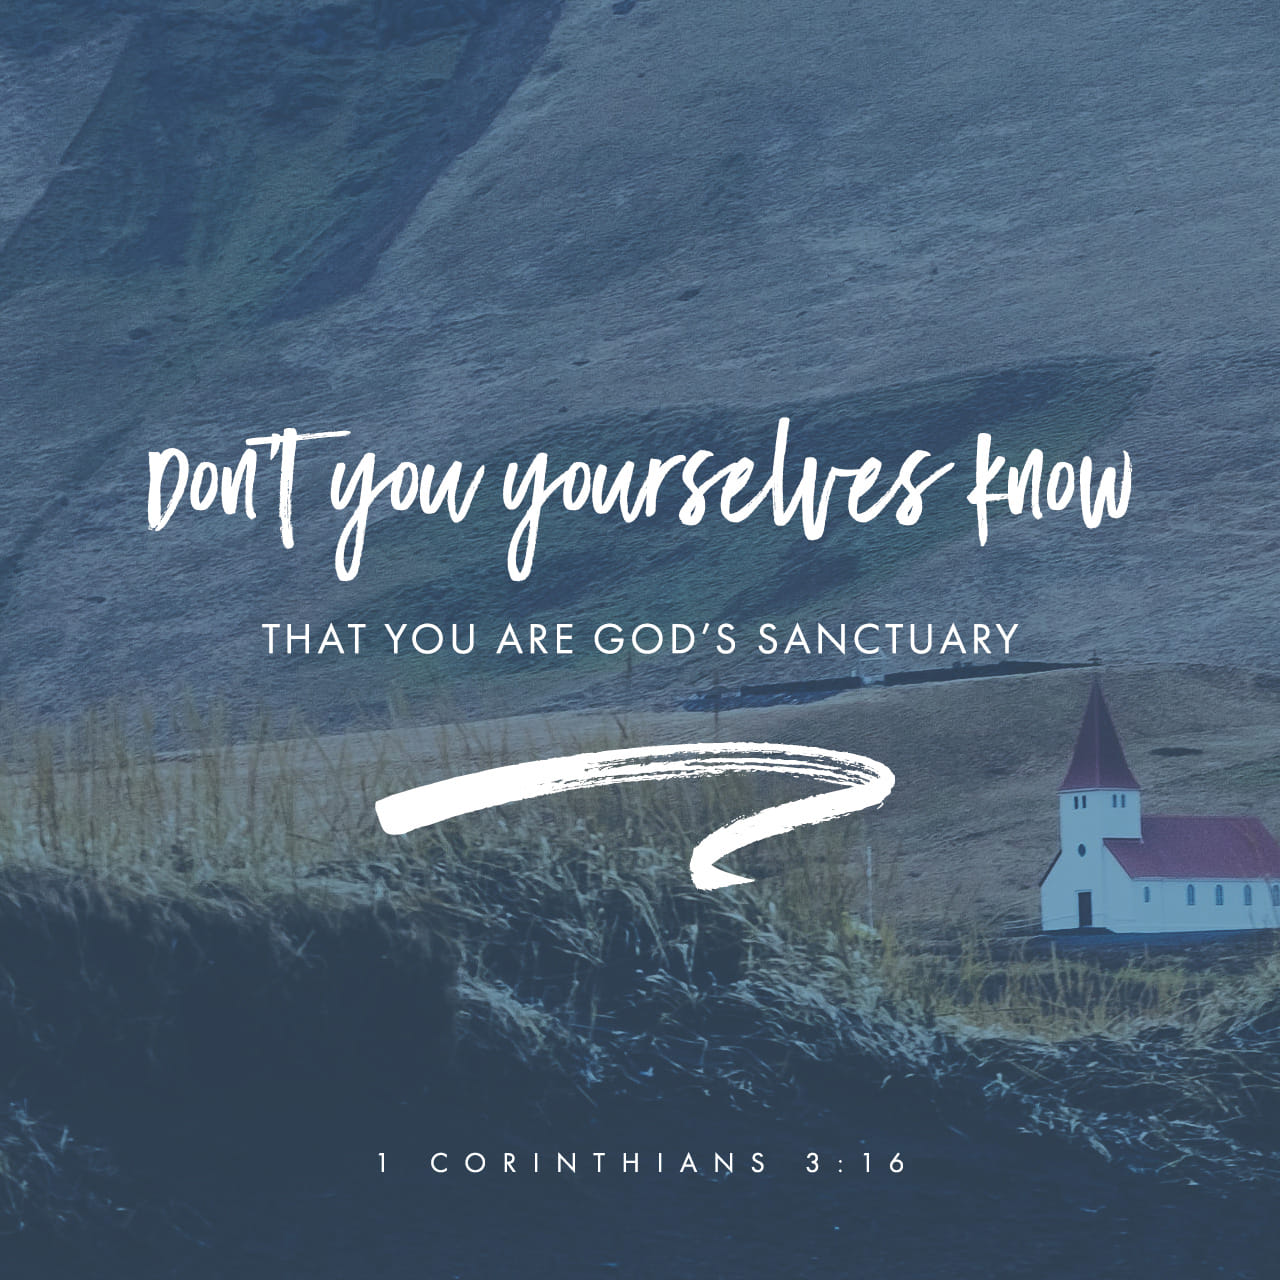 1 Corinthians 3:16 Don't you realize that all of you together are the temple of God and that the Spirit of God lives in you? | New Living Translation (NLT)